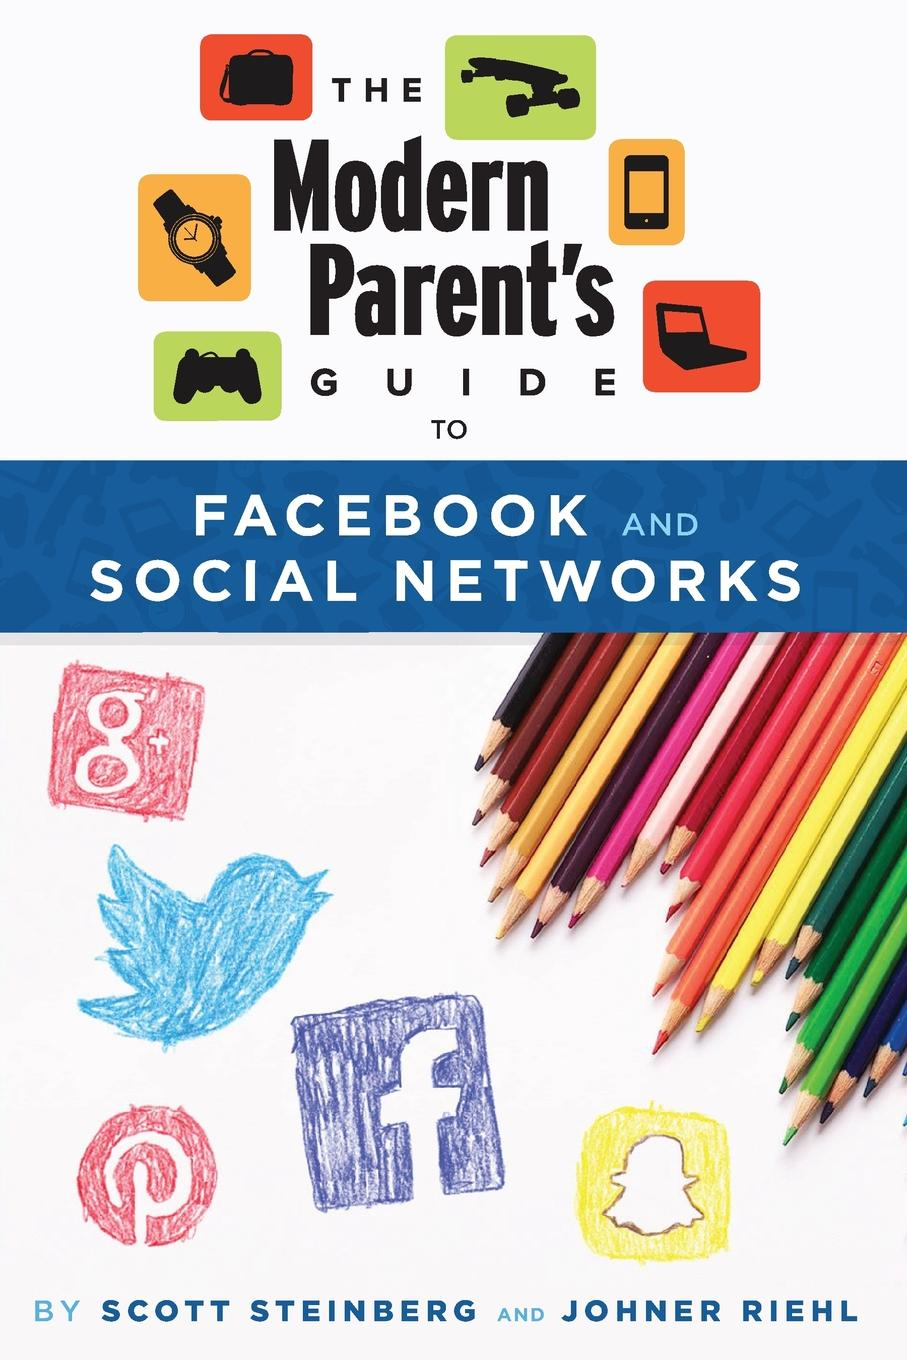 Scott Steinberg The Modern Parent.s Guide to Facebook and Social Networks steven seidman contested knowledge social theory today